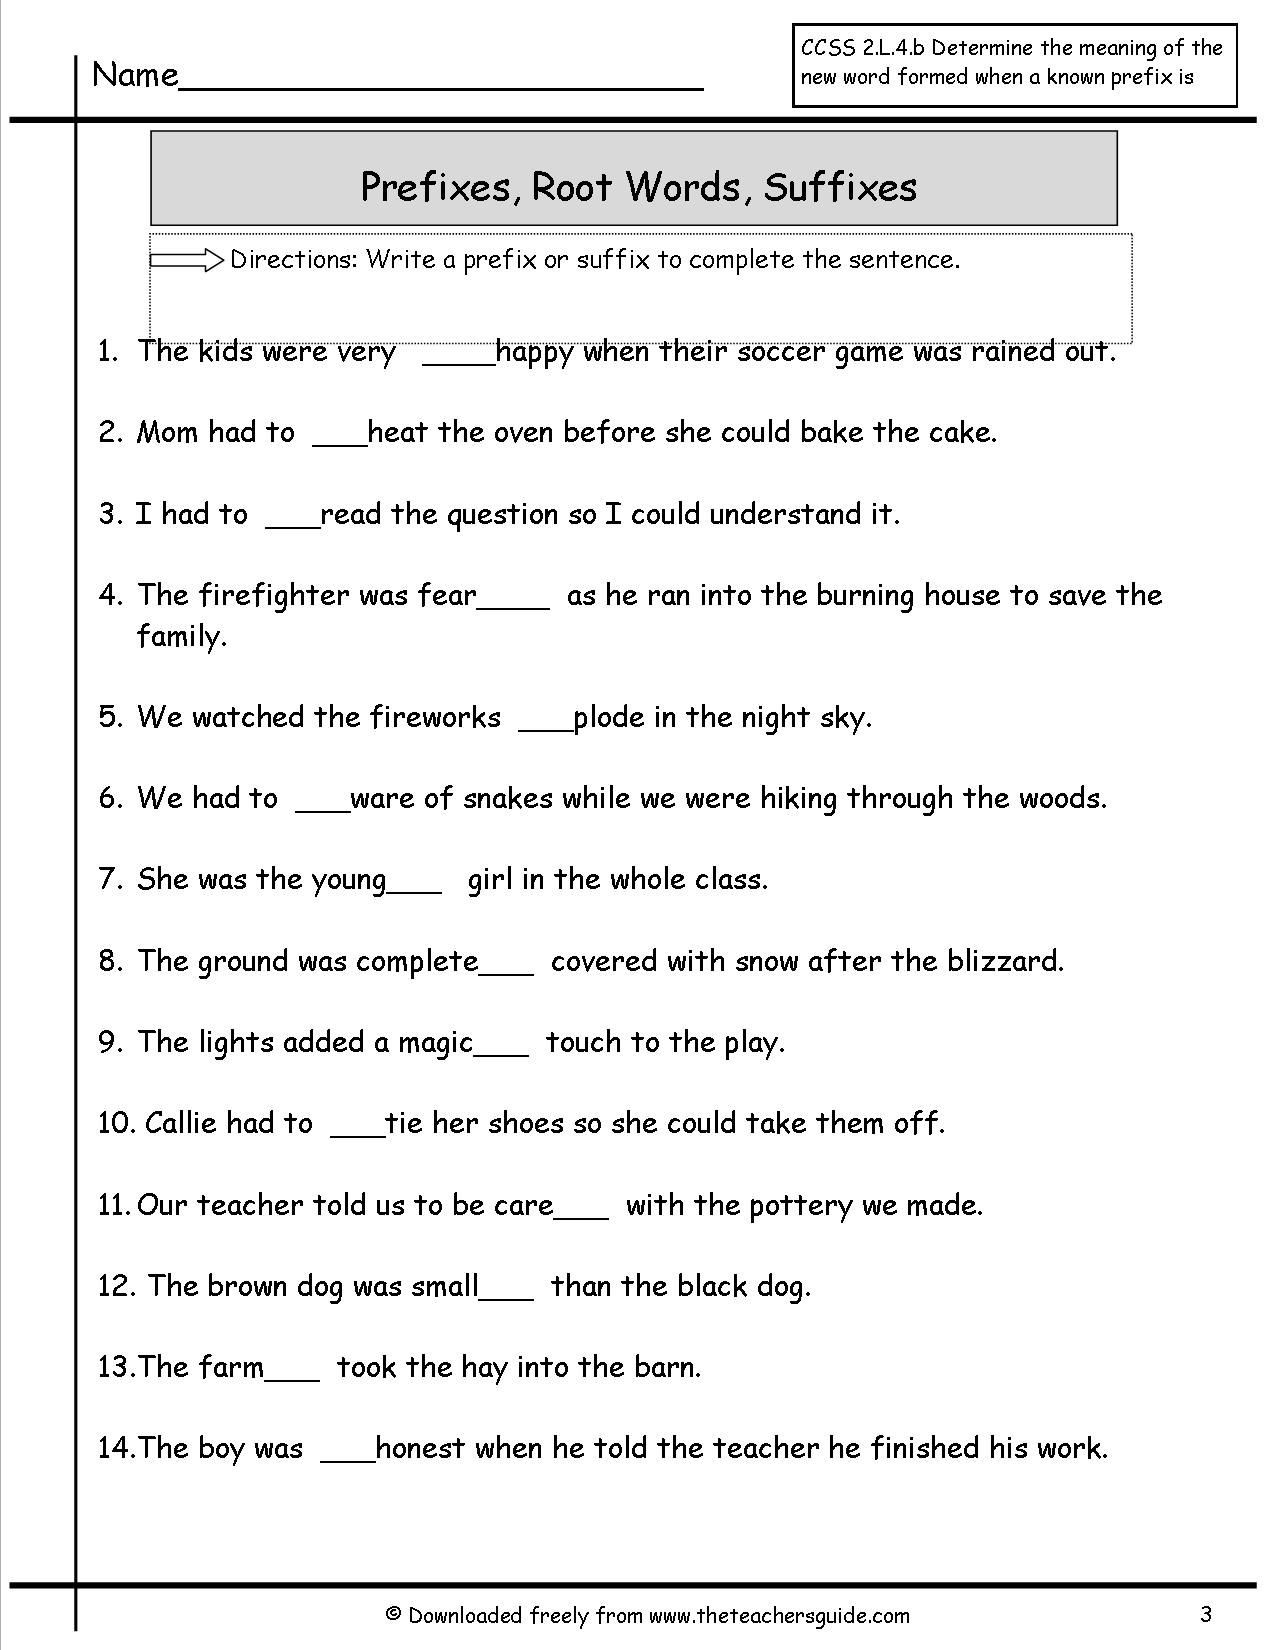 Suffix Worksheets 3rd Grade Prefixes Suffixes Worksheet